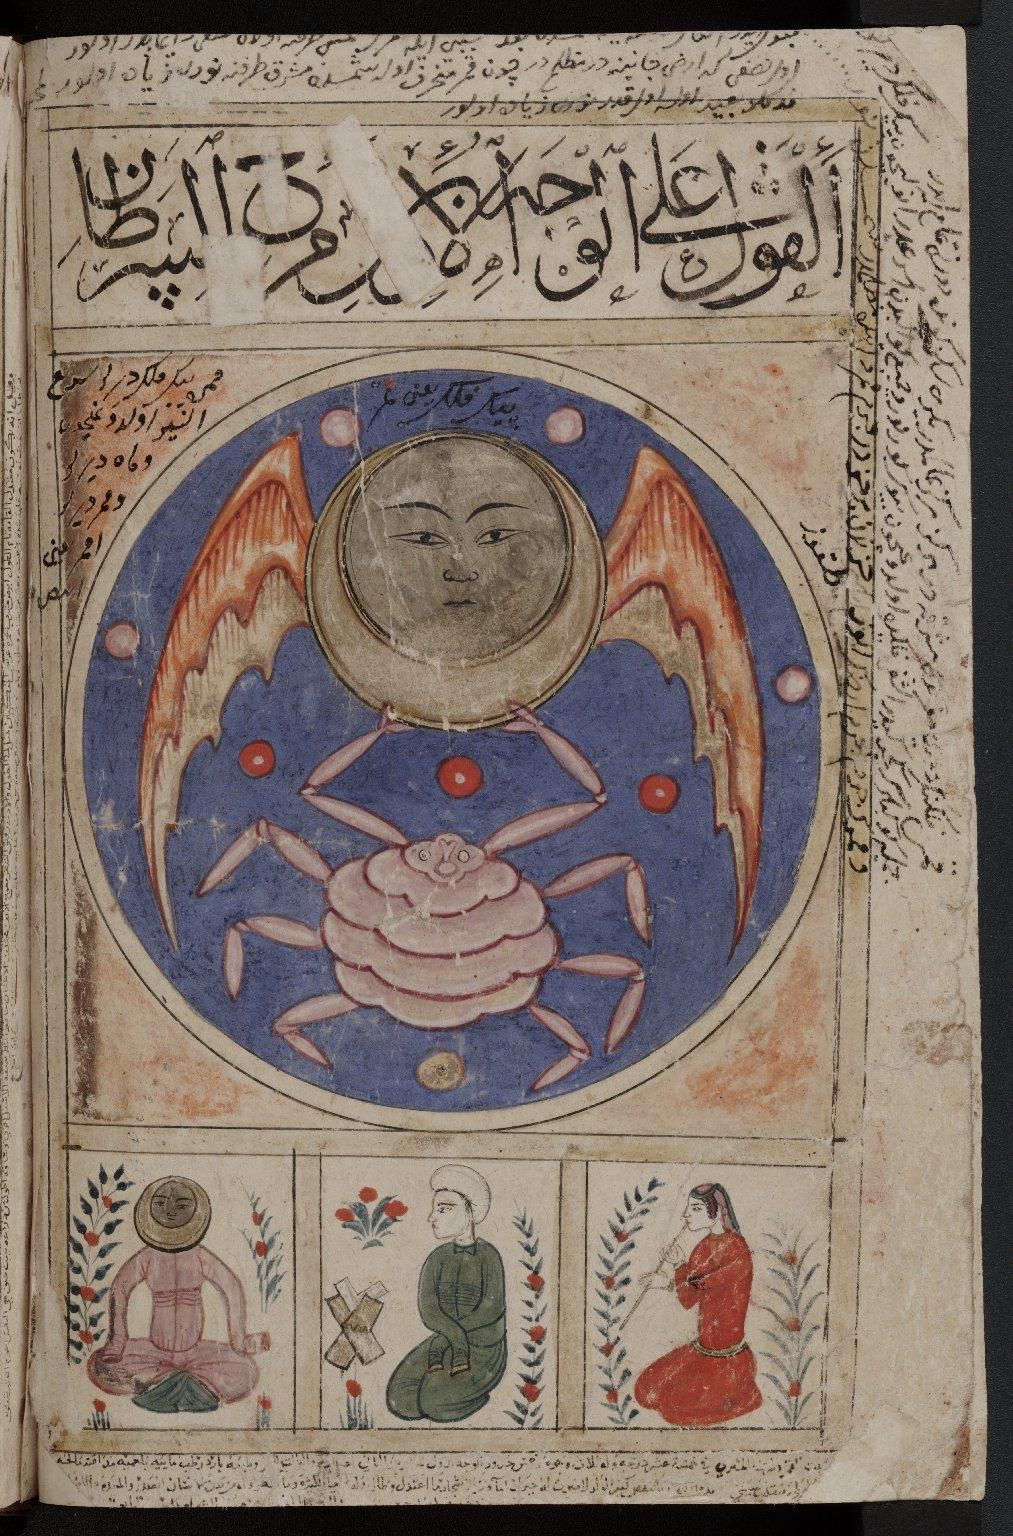 Signs of the zodiac: Cancer, or al-Saratān. Zodiac picture. From a 15th-century Arabic collectaneous manuscript known as Kitab al-bulhan.